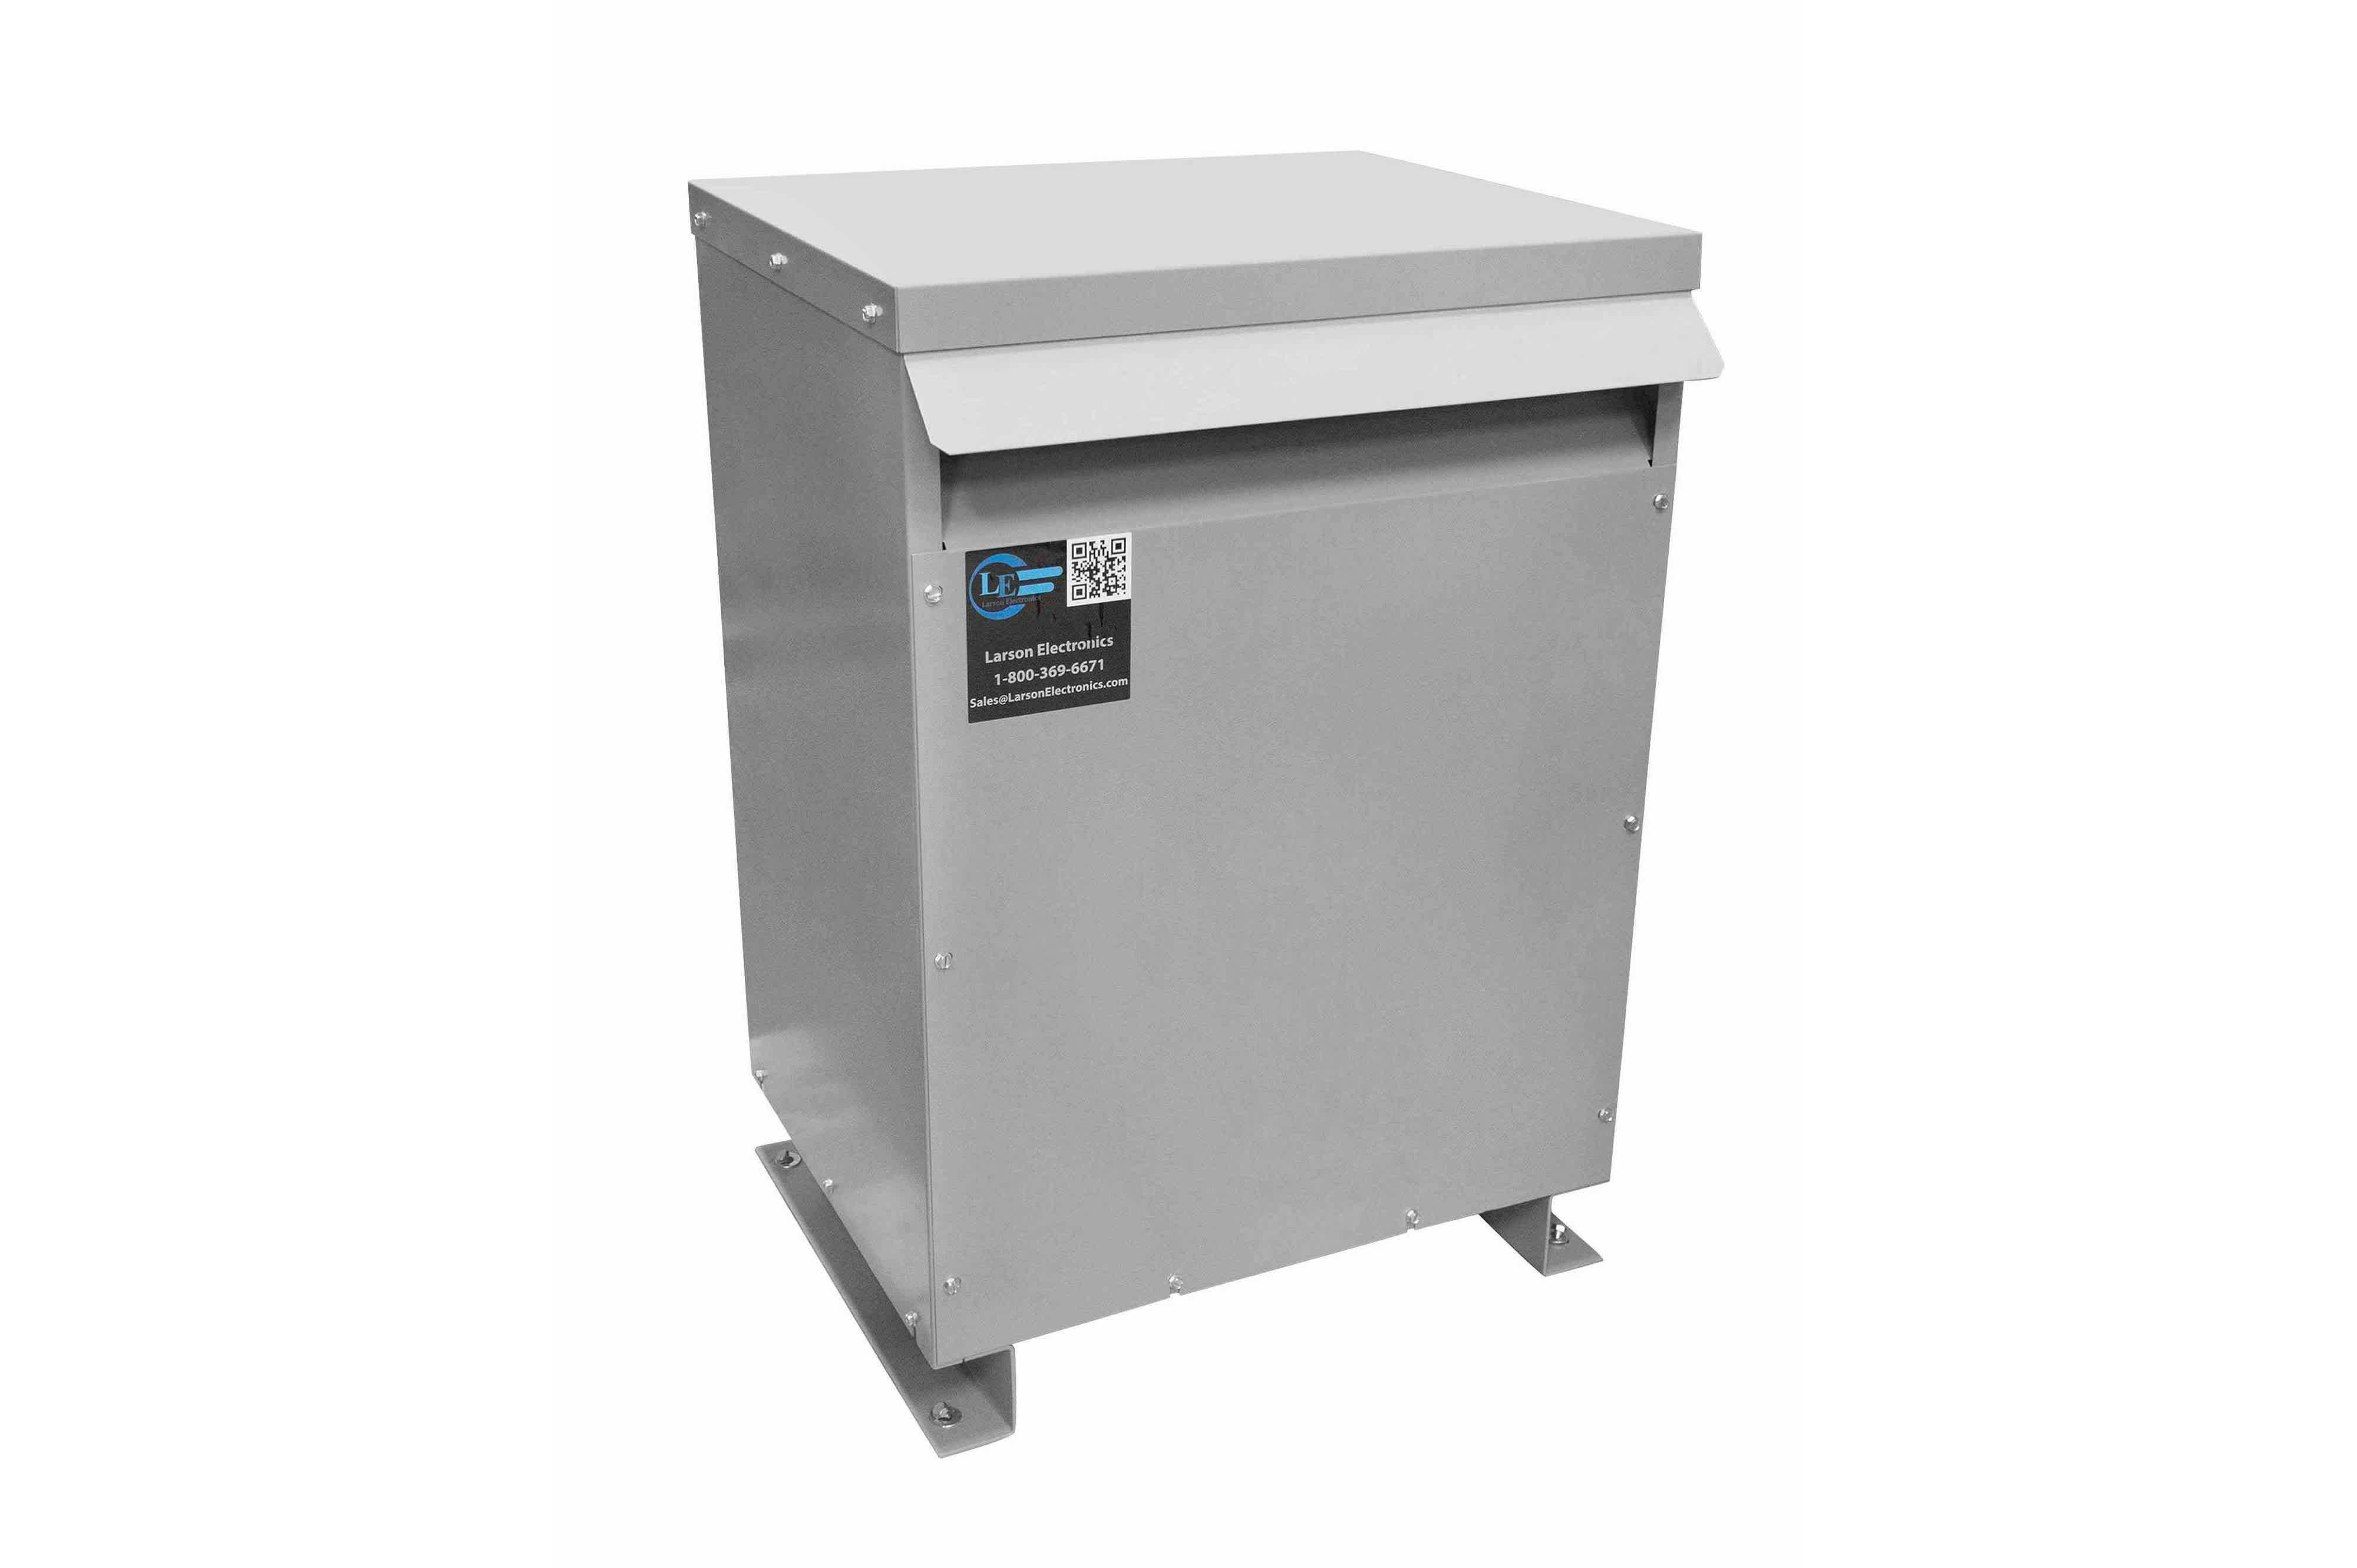 27 kVA 3PH Isolation Transformer, 600V Wye Primary, 208V Delta Secondary, N3R, Ventilated, 60 Hz